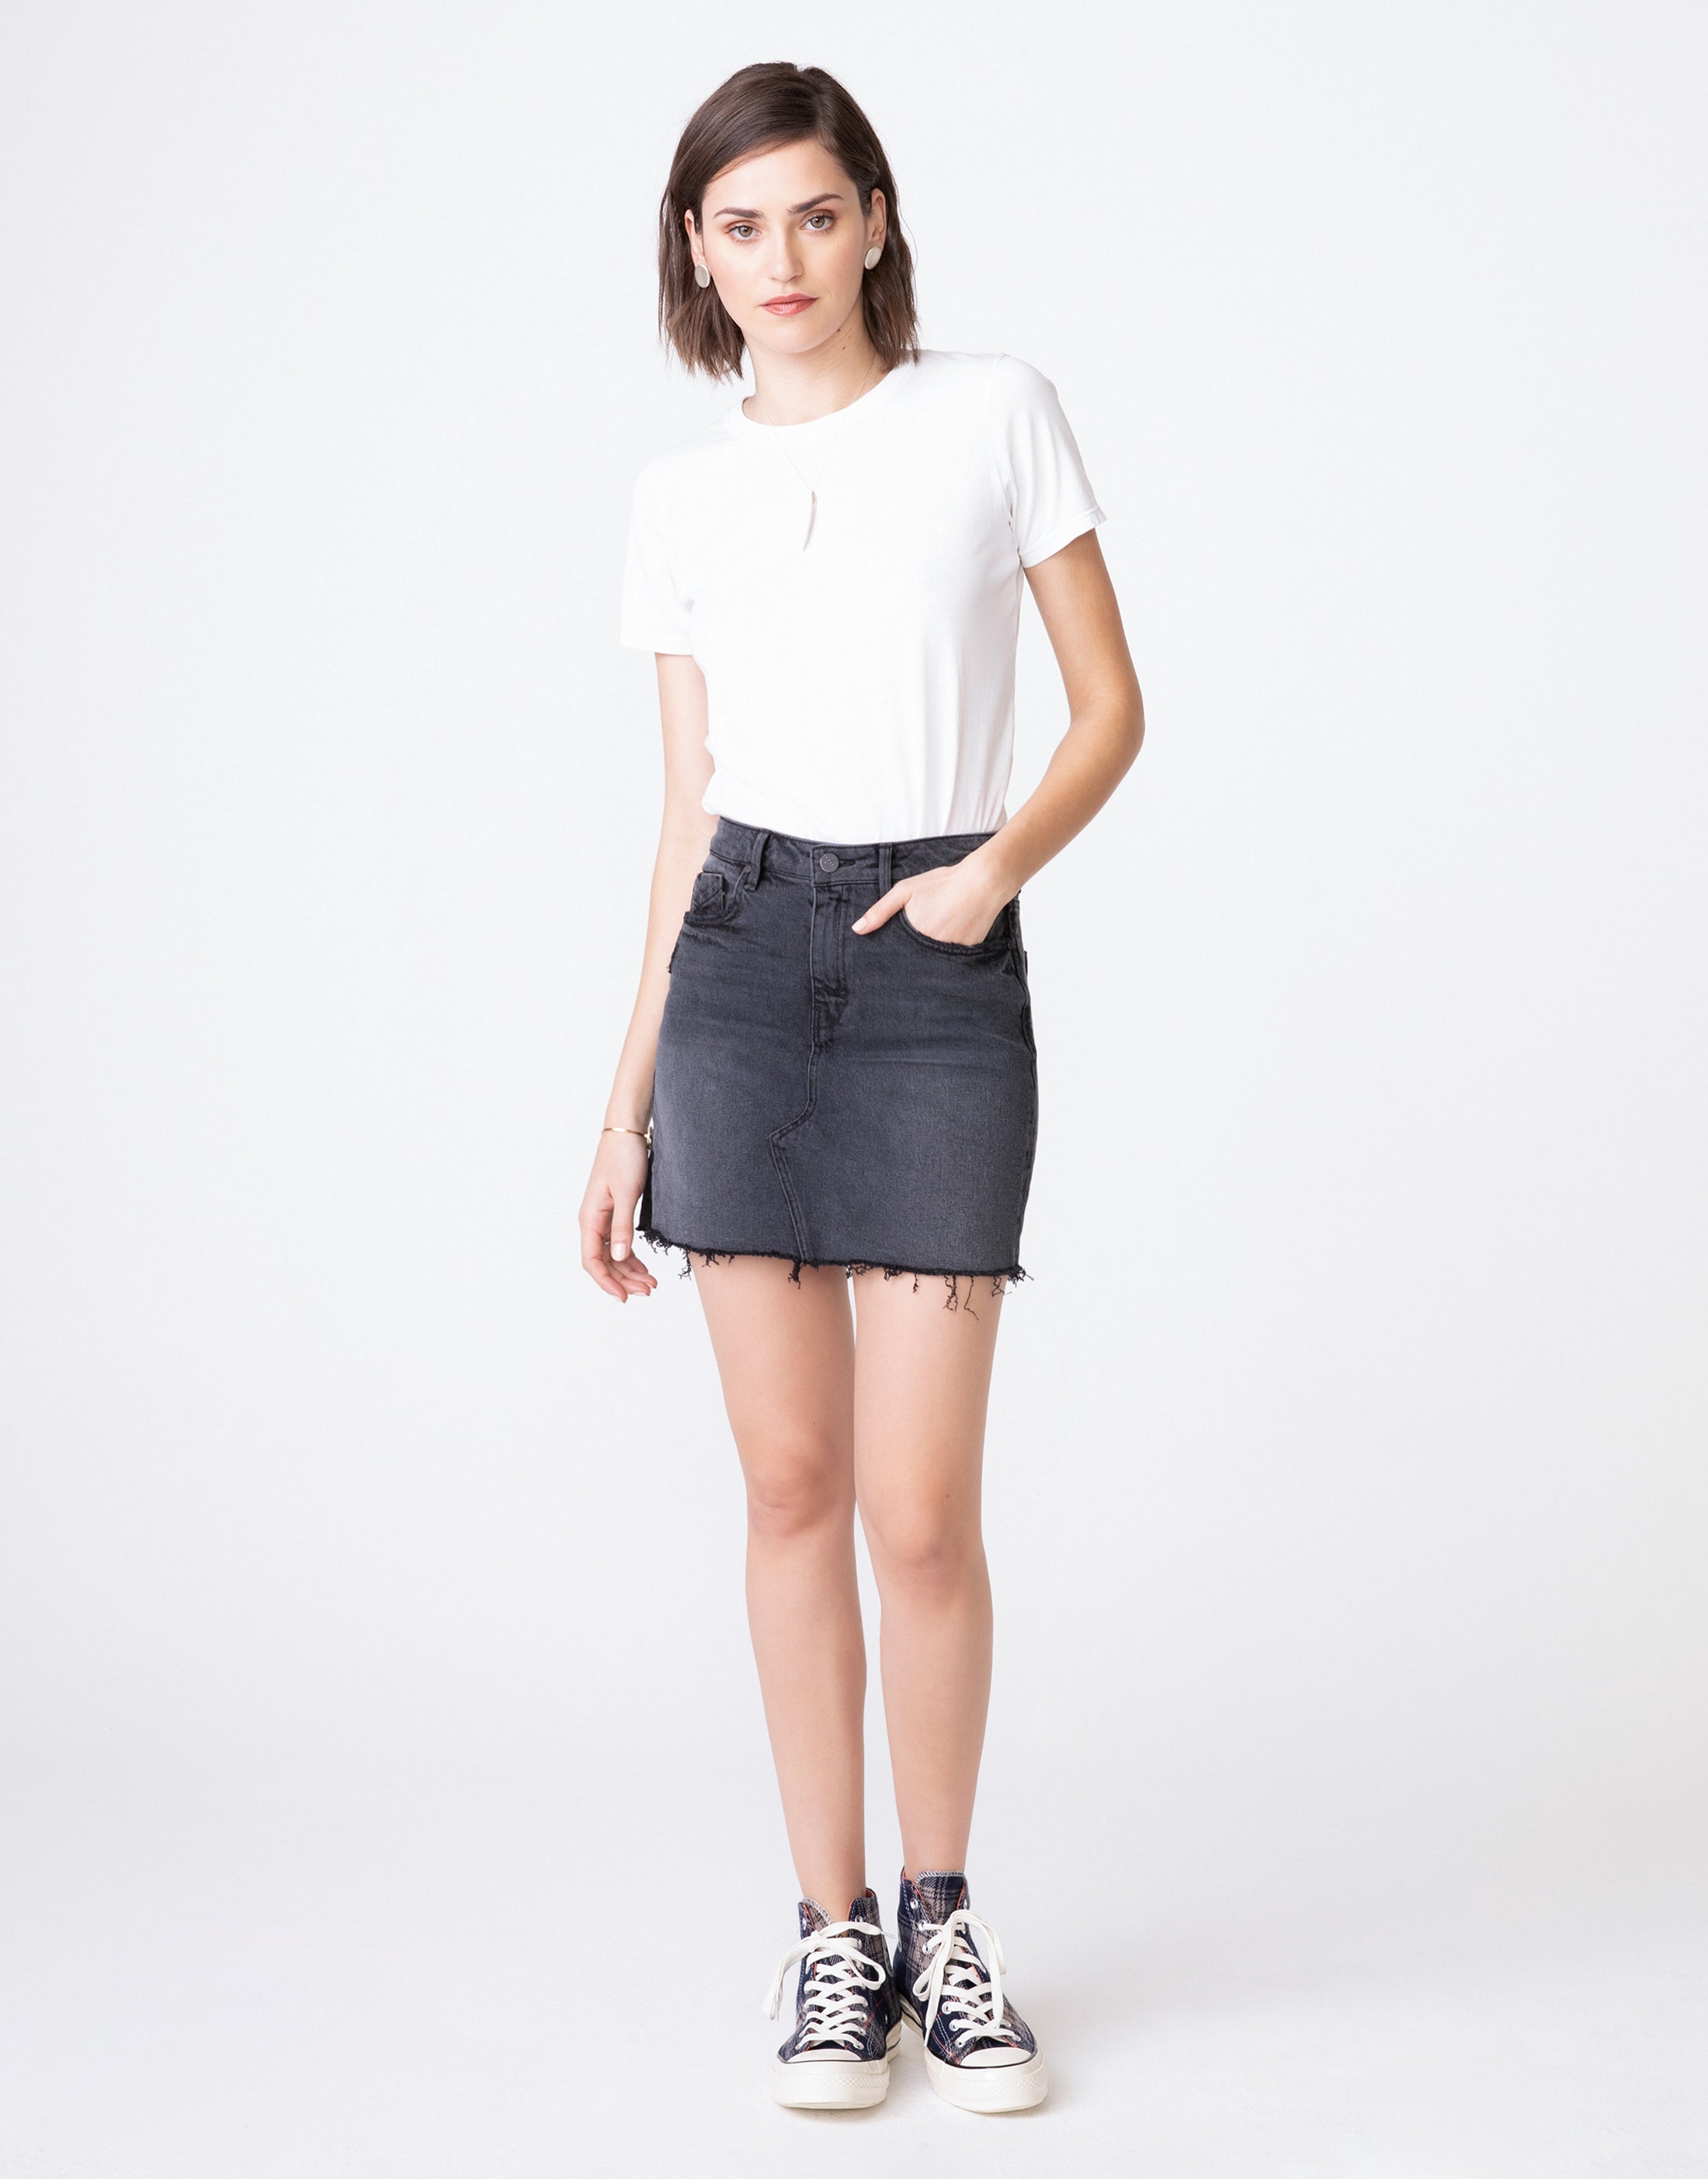 NICO High Waist Mini Skirt in Grunge